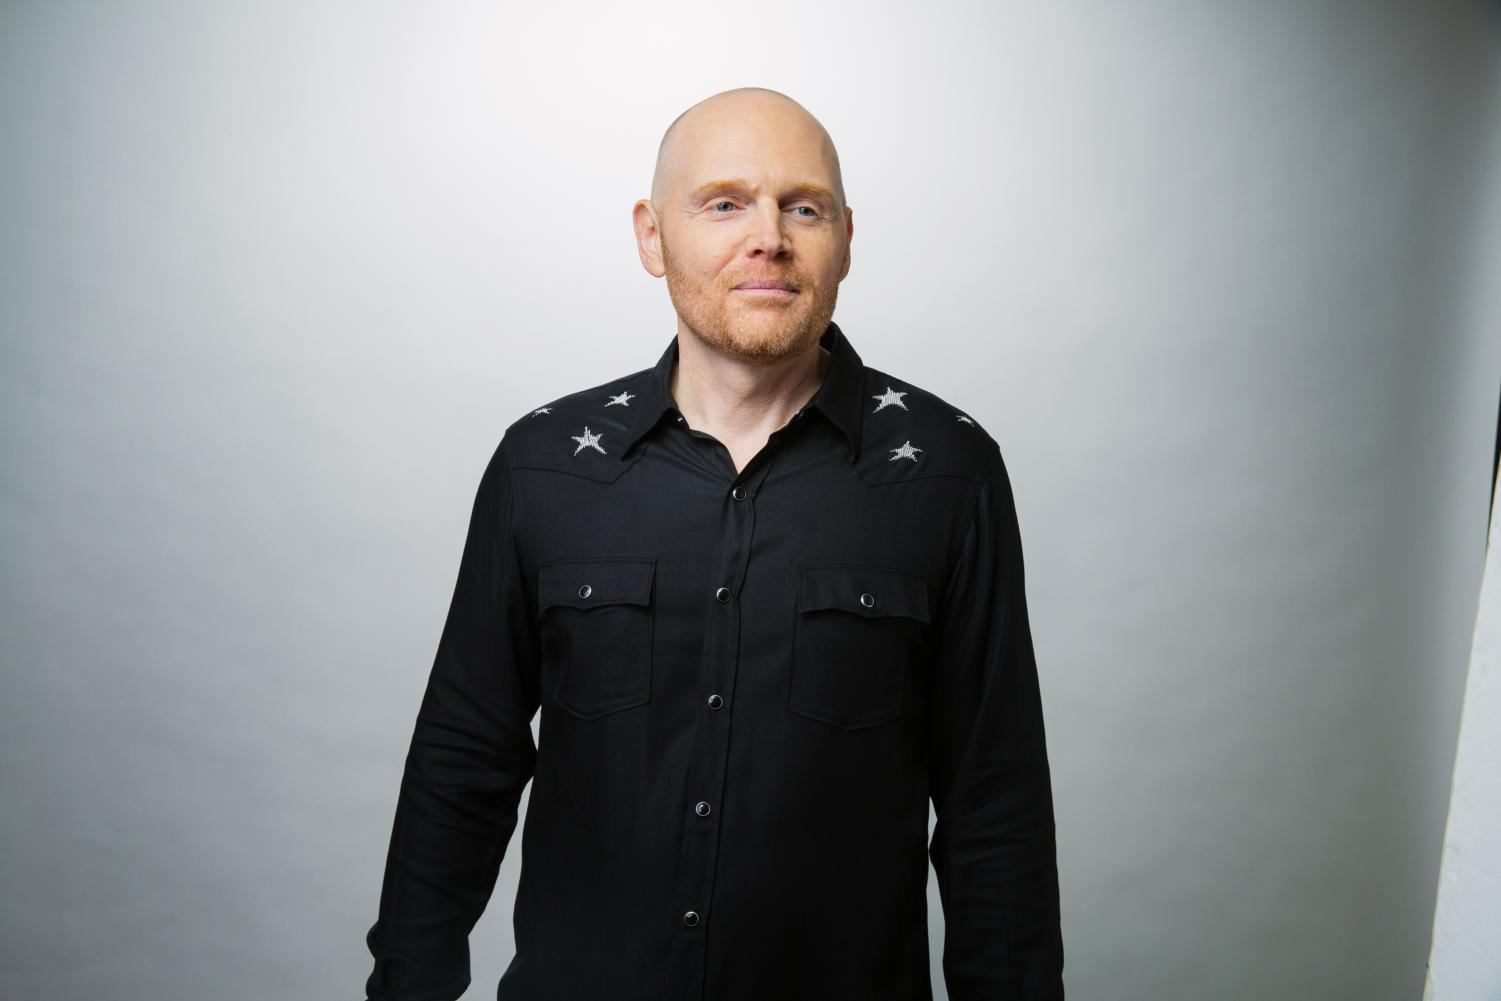 Bill Burr 93 Receives First Grammy Nomination For Comedy Album Paper Tiger The Berkeley Beacon